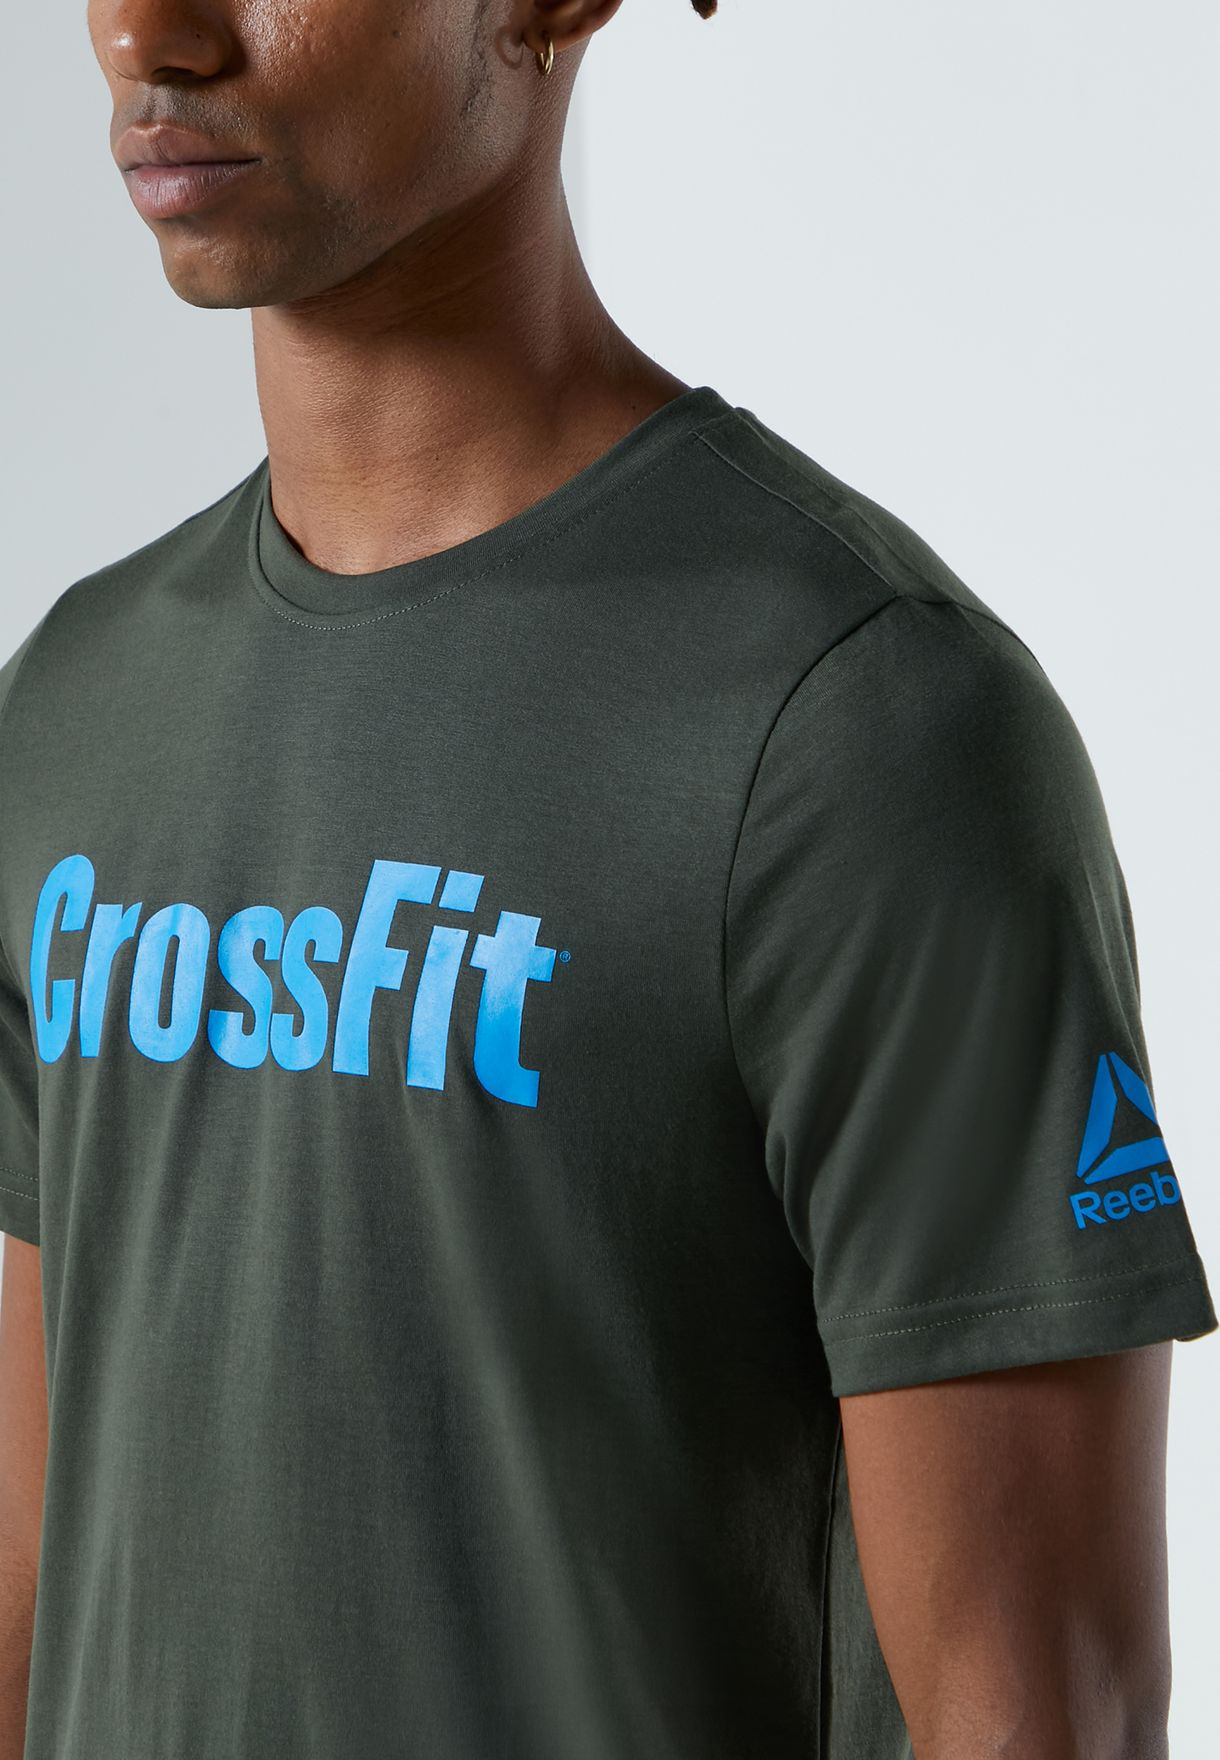 CrossFit Read T-Shirt